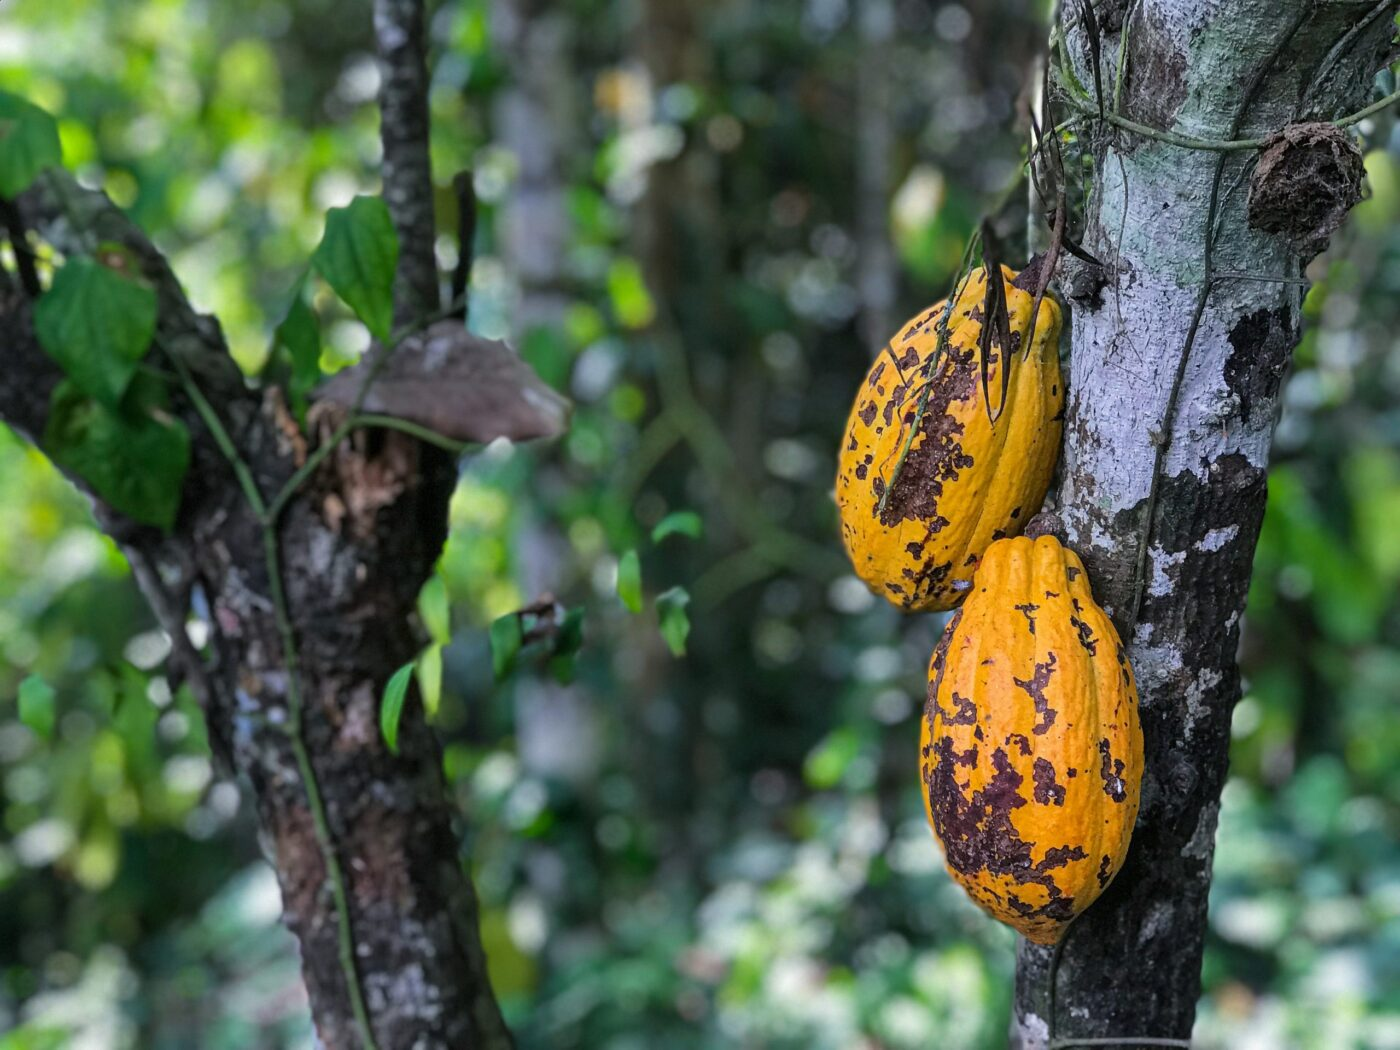 A complete guide to cocoa beans and the cocoa tree